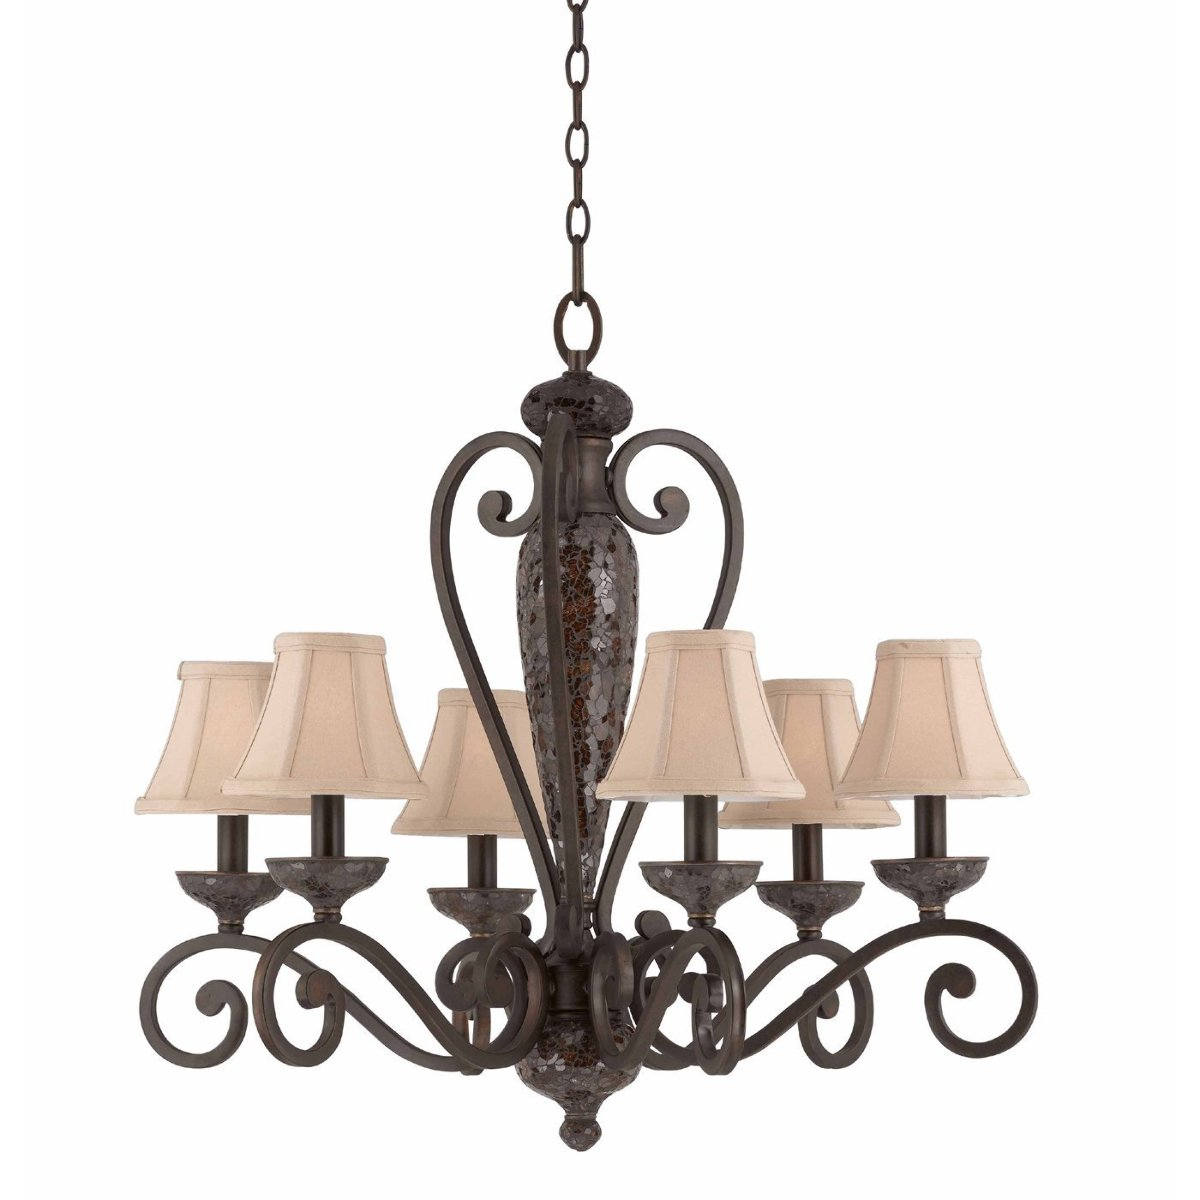 Triarch 31443 6 light jewelry chandelier harvest bronze missing triarch 31443 6 light jewelry chandelier harvest bronze missing part aloadofball Image collections